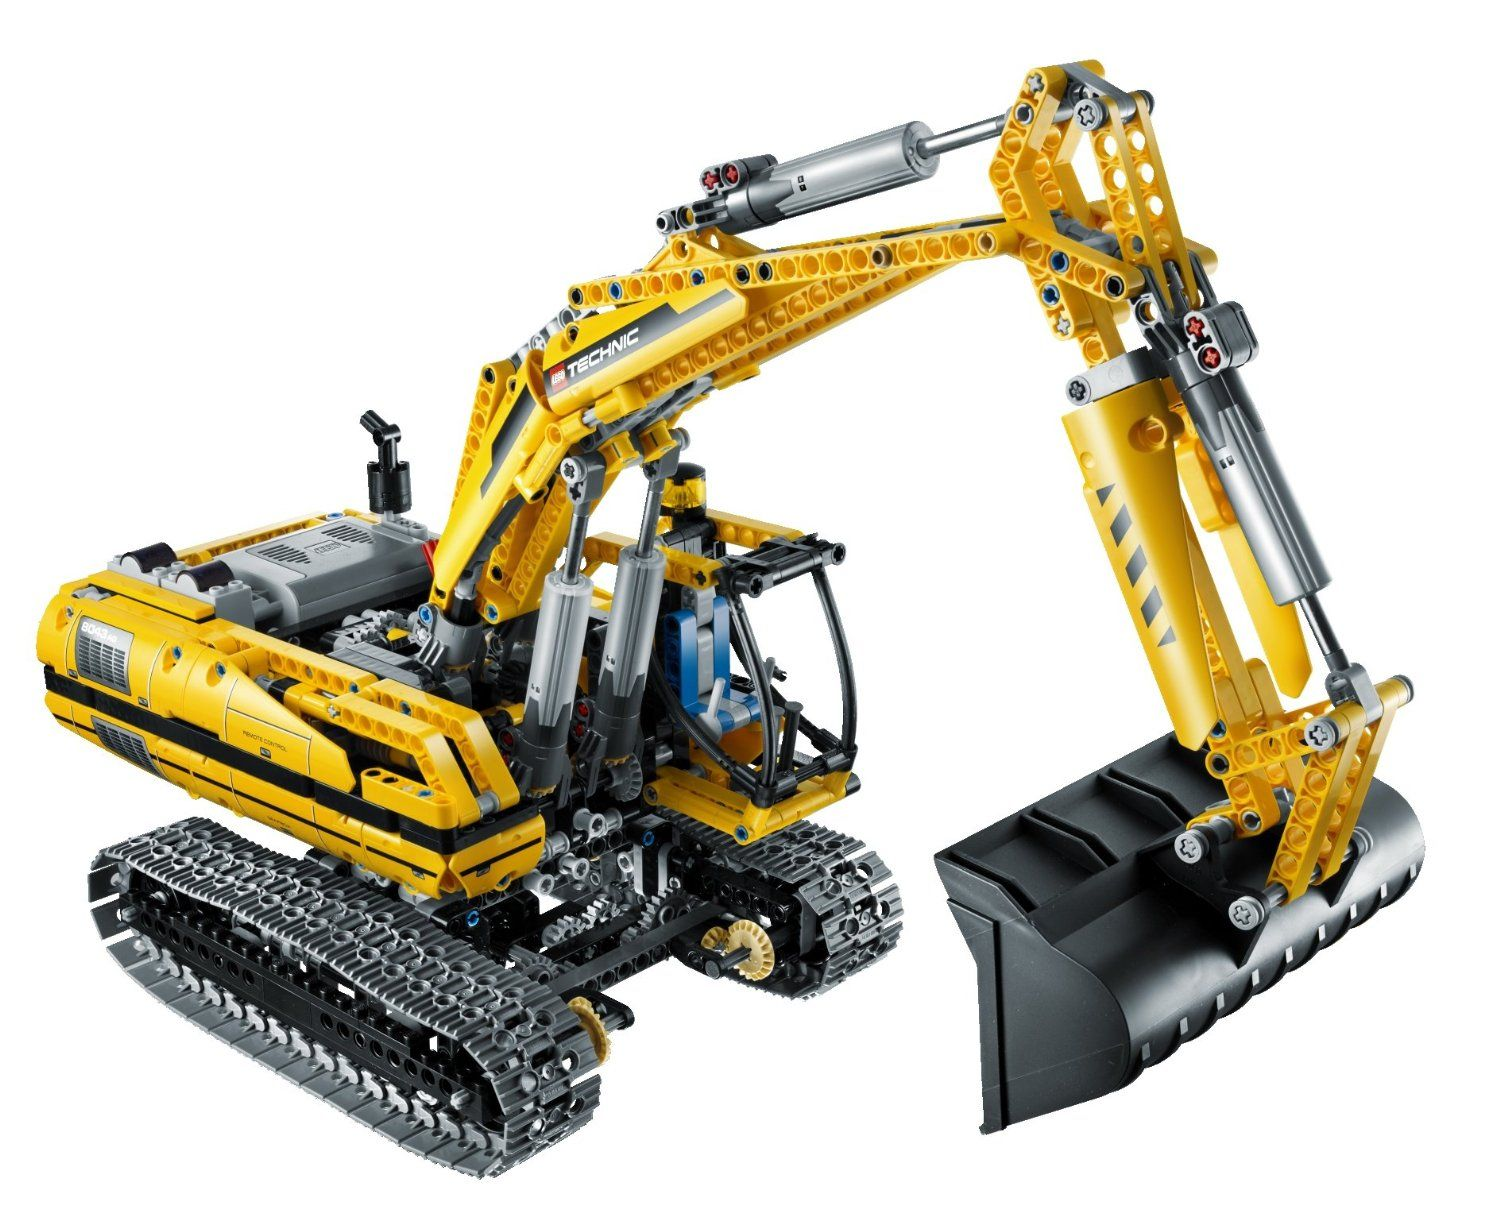 The top LEGO Technic set that I have ever seen and some of